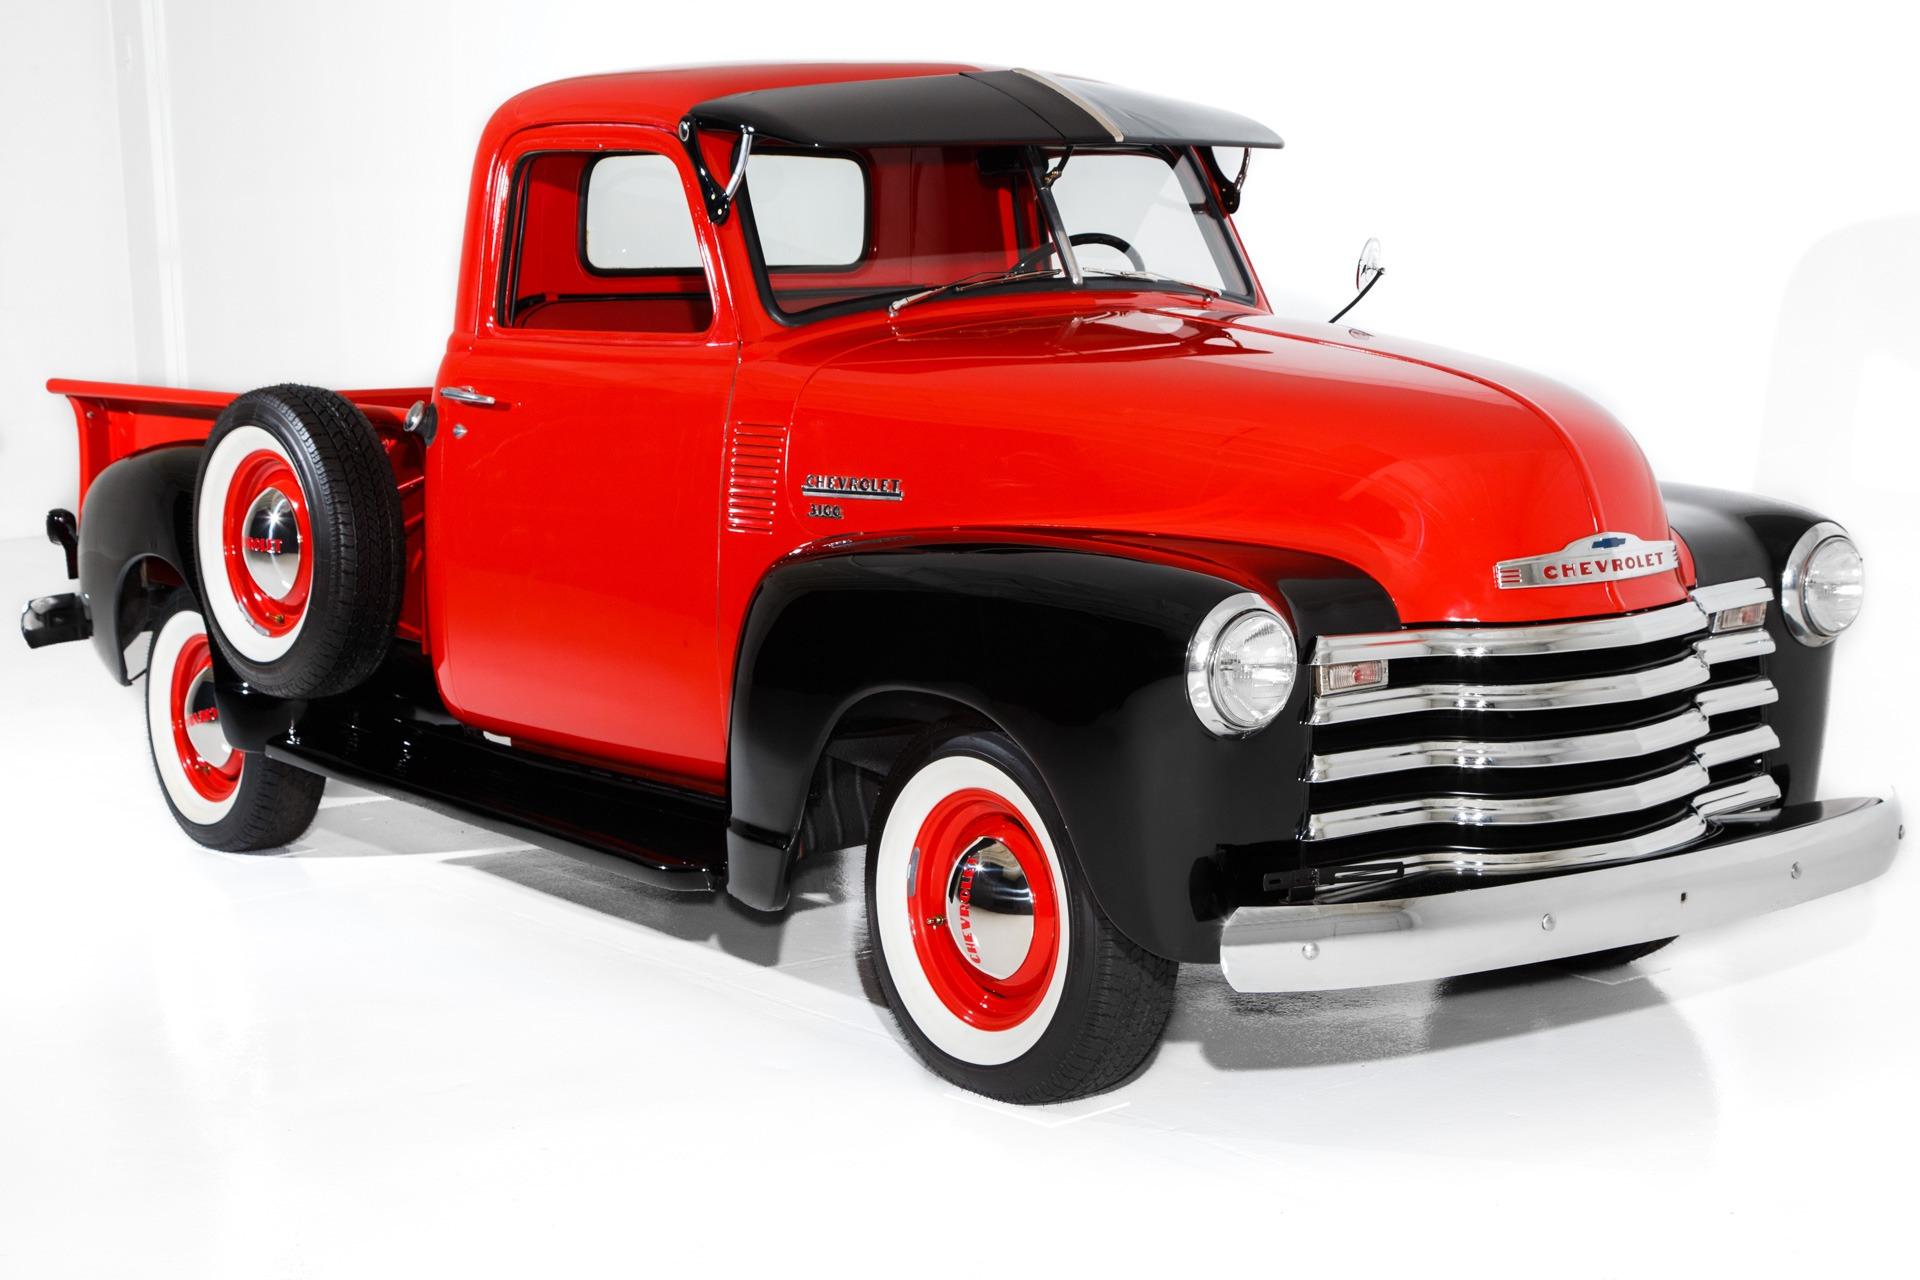 For Sale Used 1949 Chevrolet Pickup Extensive Restoration | American Dream Machines Des Moines IA 50309